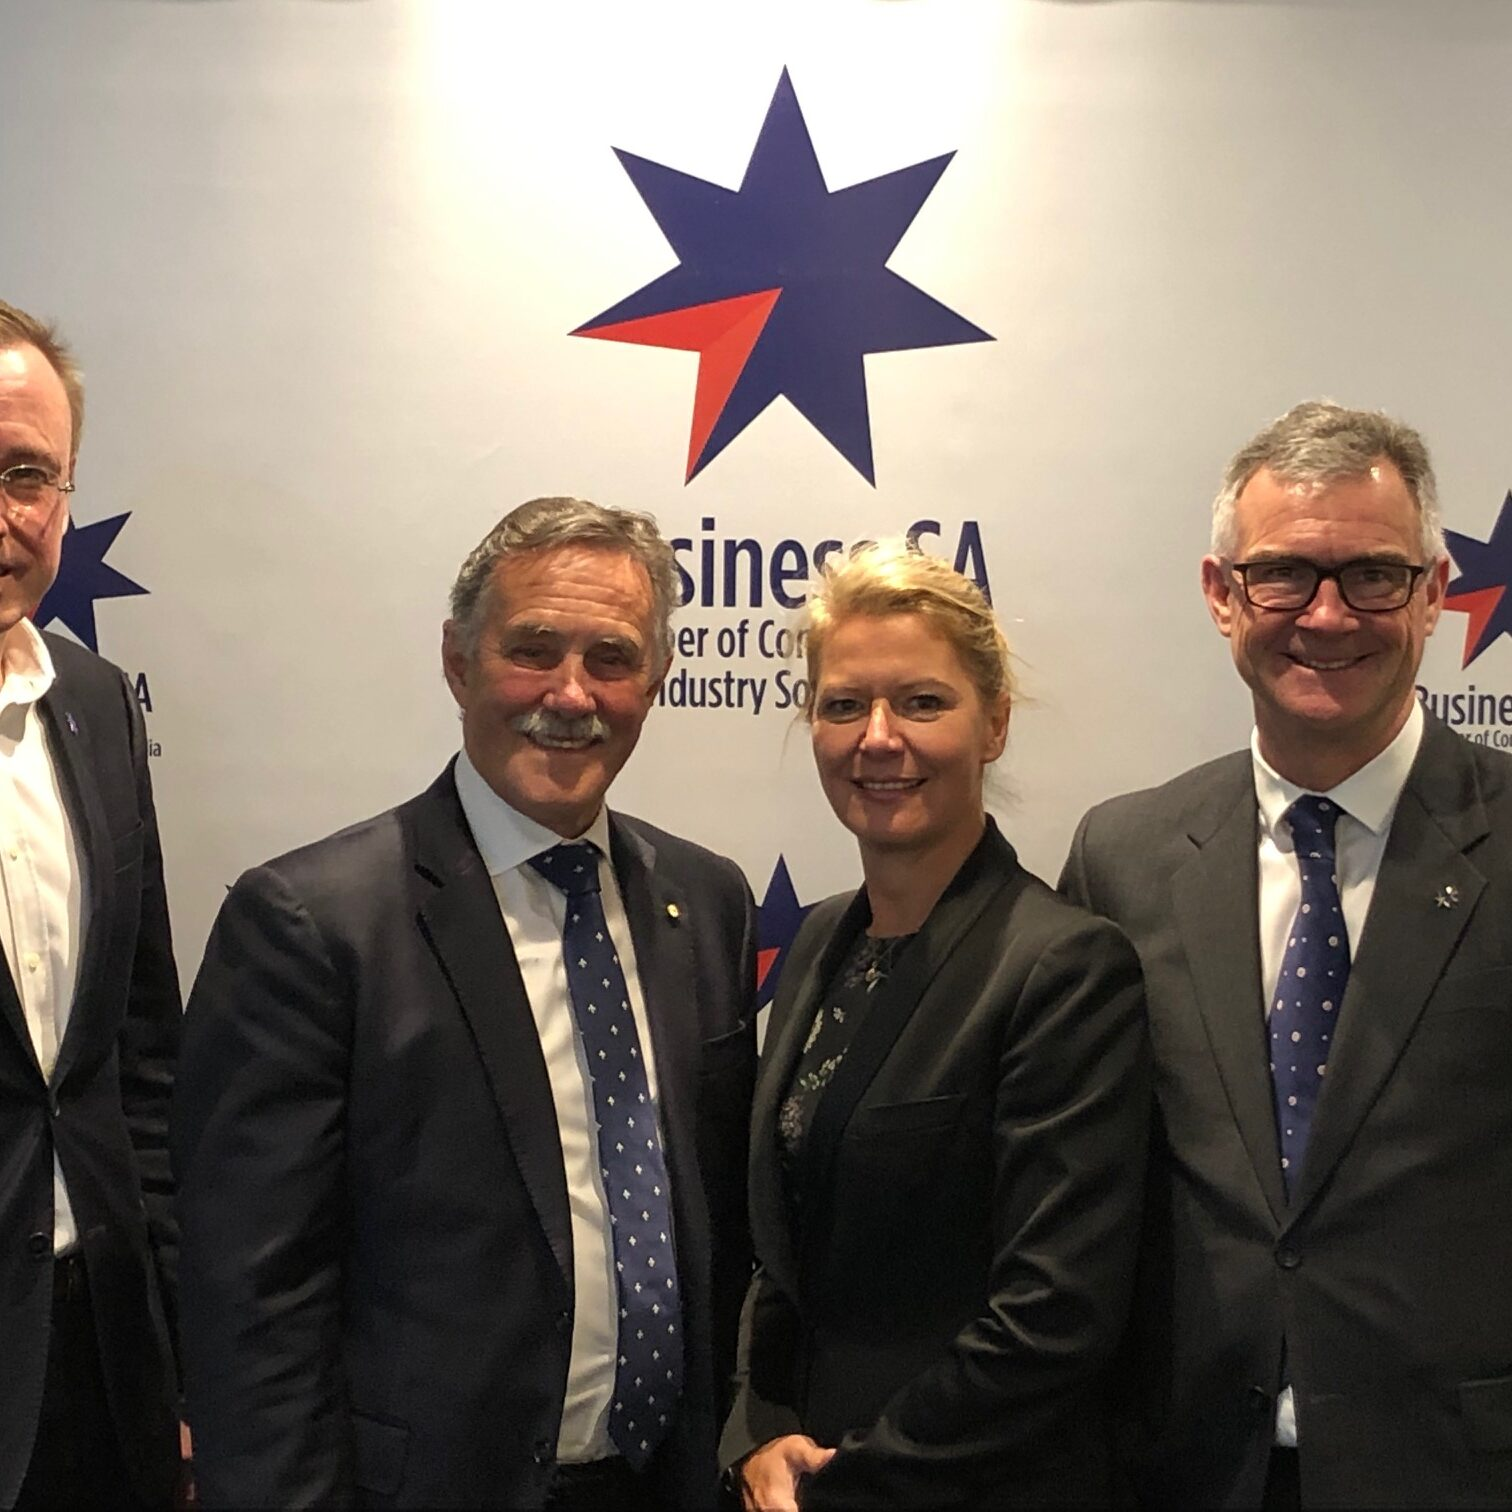 Martin Haese (CEO, Business SA), Jeremy Johnson (President, Australian Chamber of Commerce & Industry), Nikki Govan (Chair, Business SA) and James Pearson (CEO, Australian Chamber of Commerce & Industry).